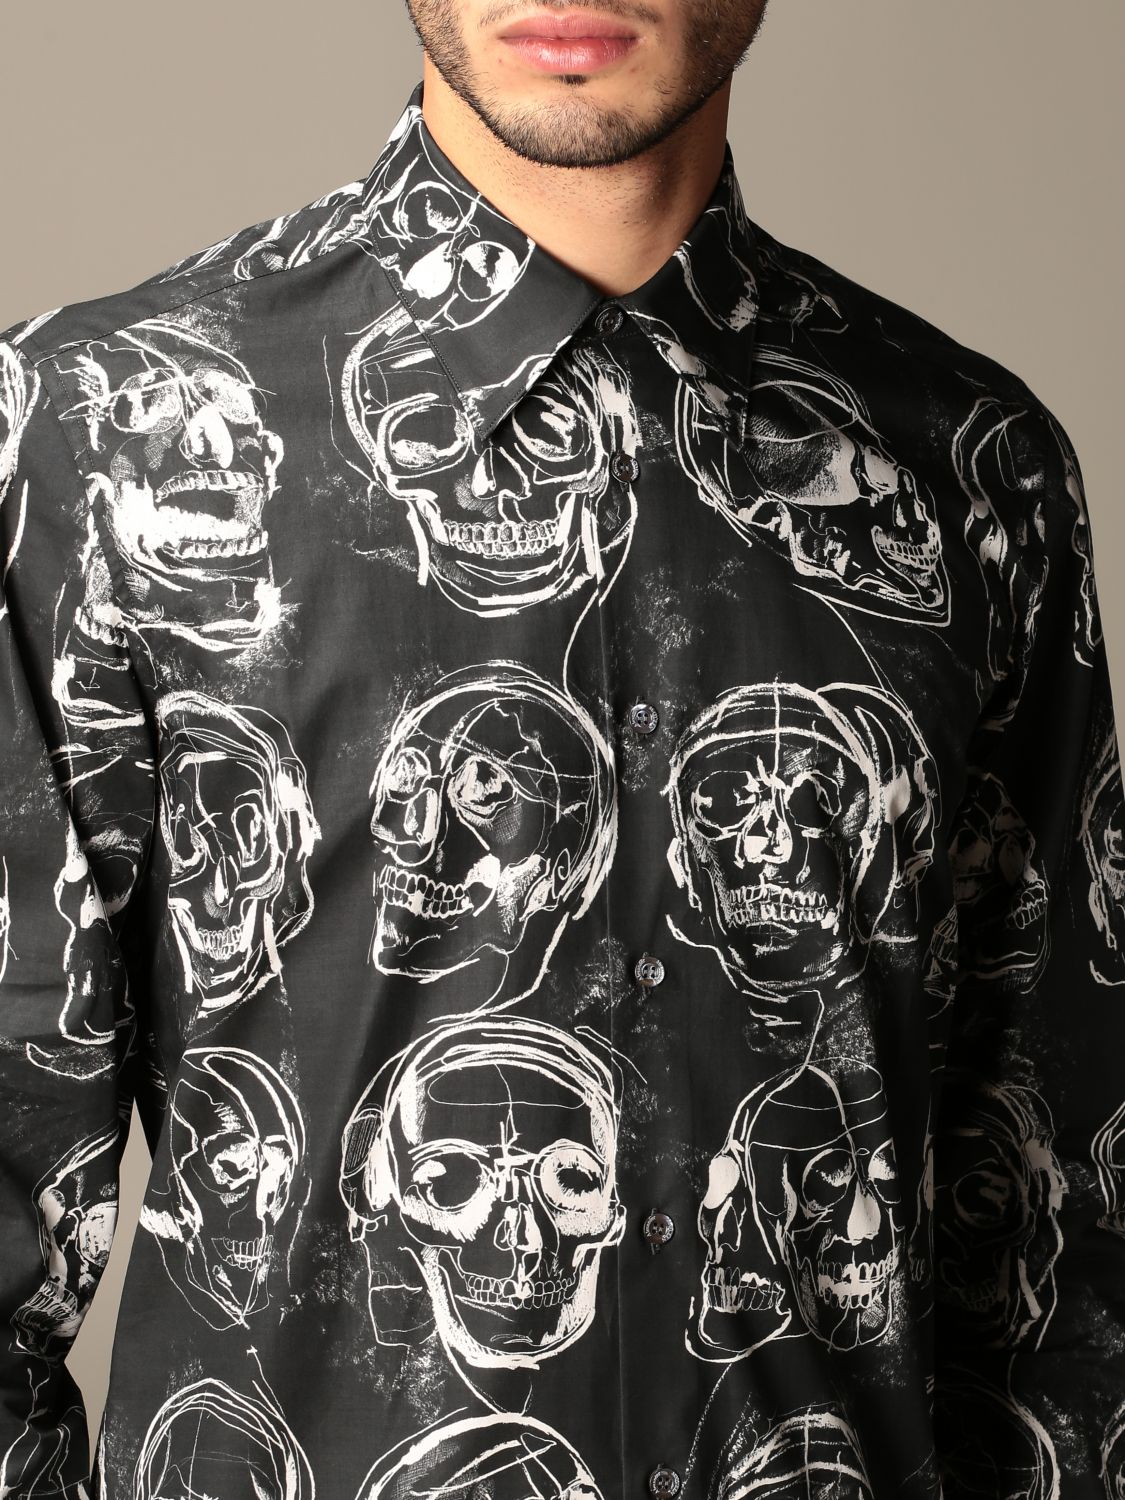 Shirt Alexander Mcqueen: Alexander McQueen shirt with all over skulls black 5